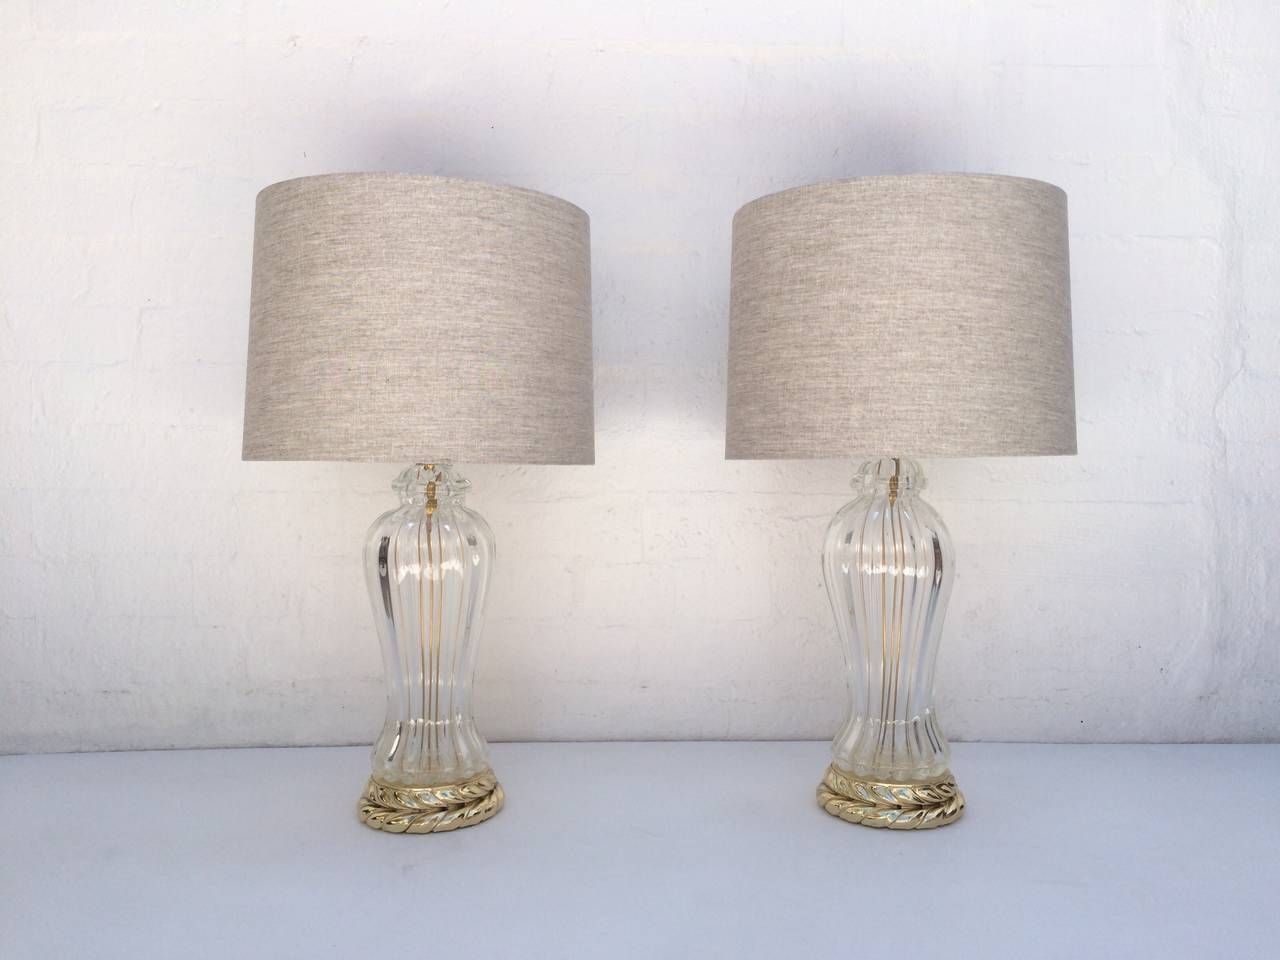 Pair of Italian Murano glass table lamps with newly re-plated polished brass bases.  Newly rewired with new polished brass hardware.  New oatmeal linen shades.  Made by The Marbro Lamp Company, circa 1960s.